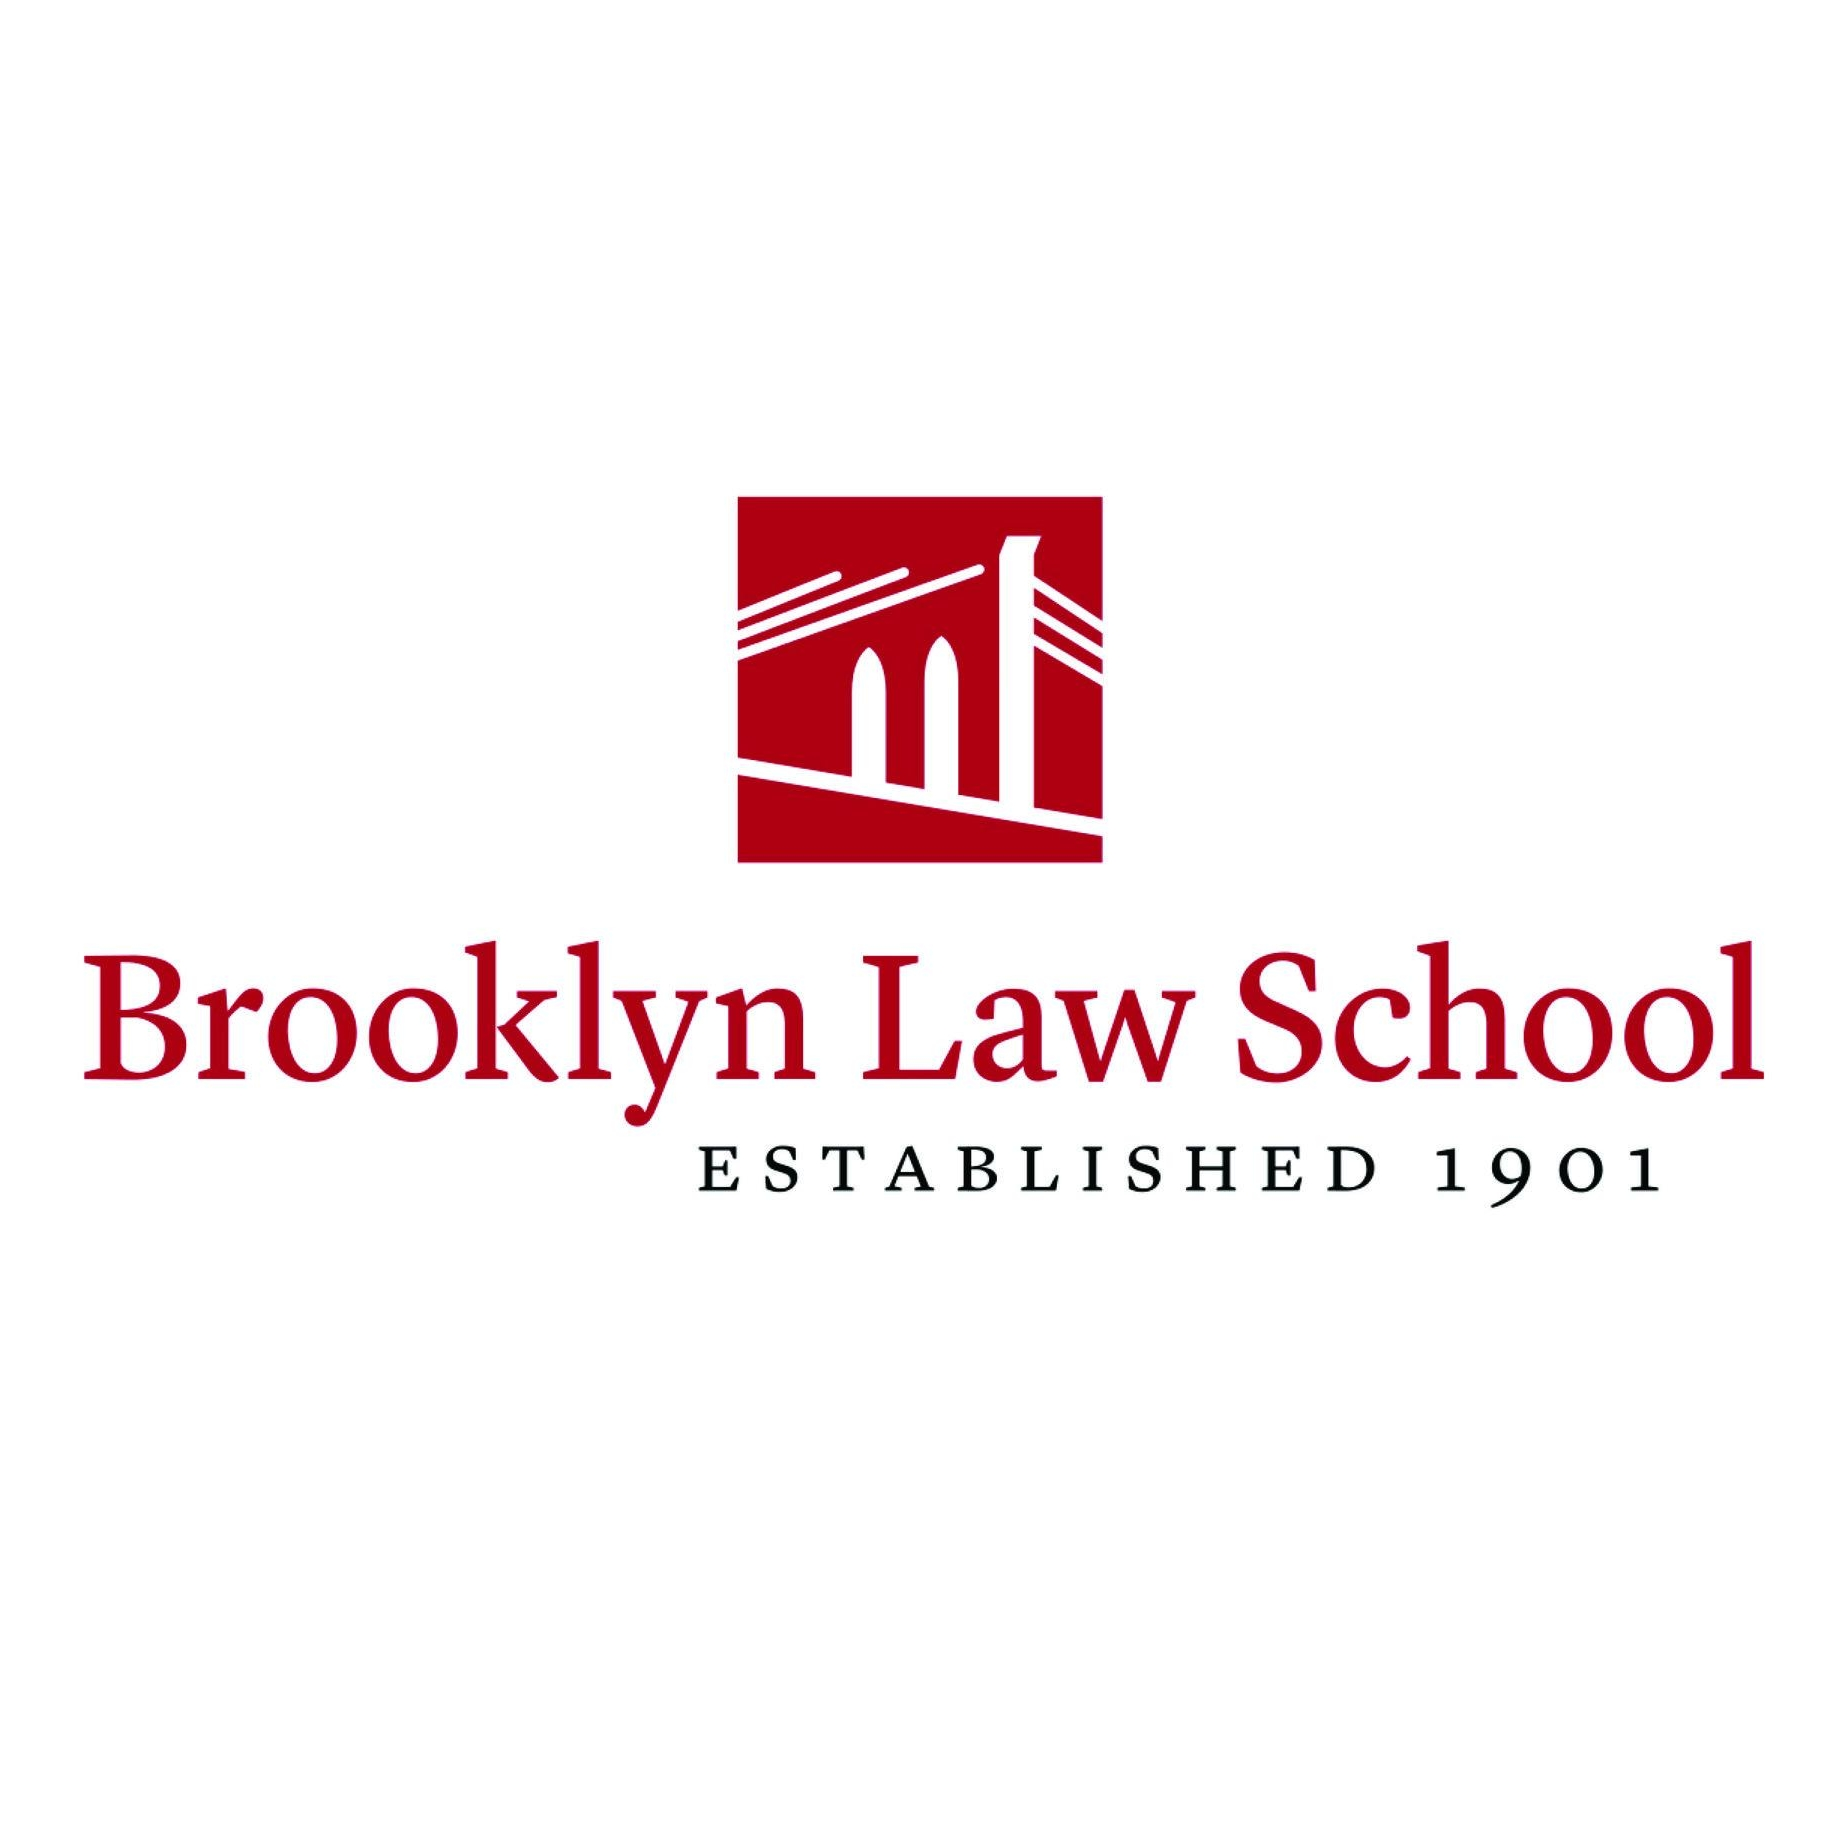 Brooklyn Law School